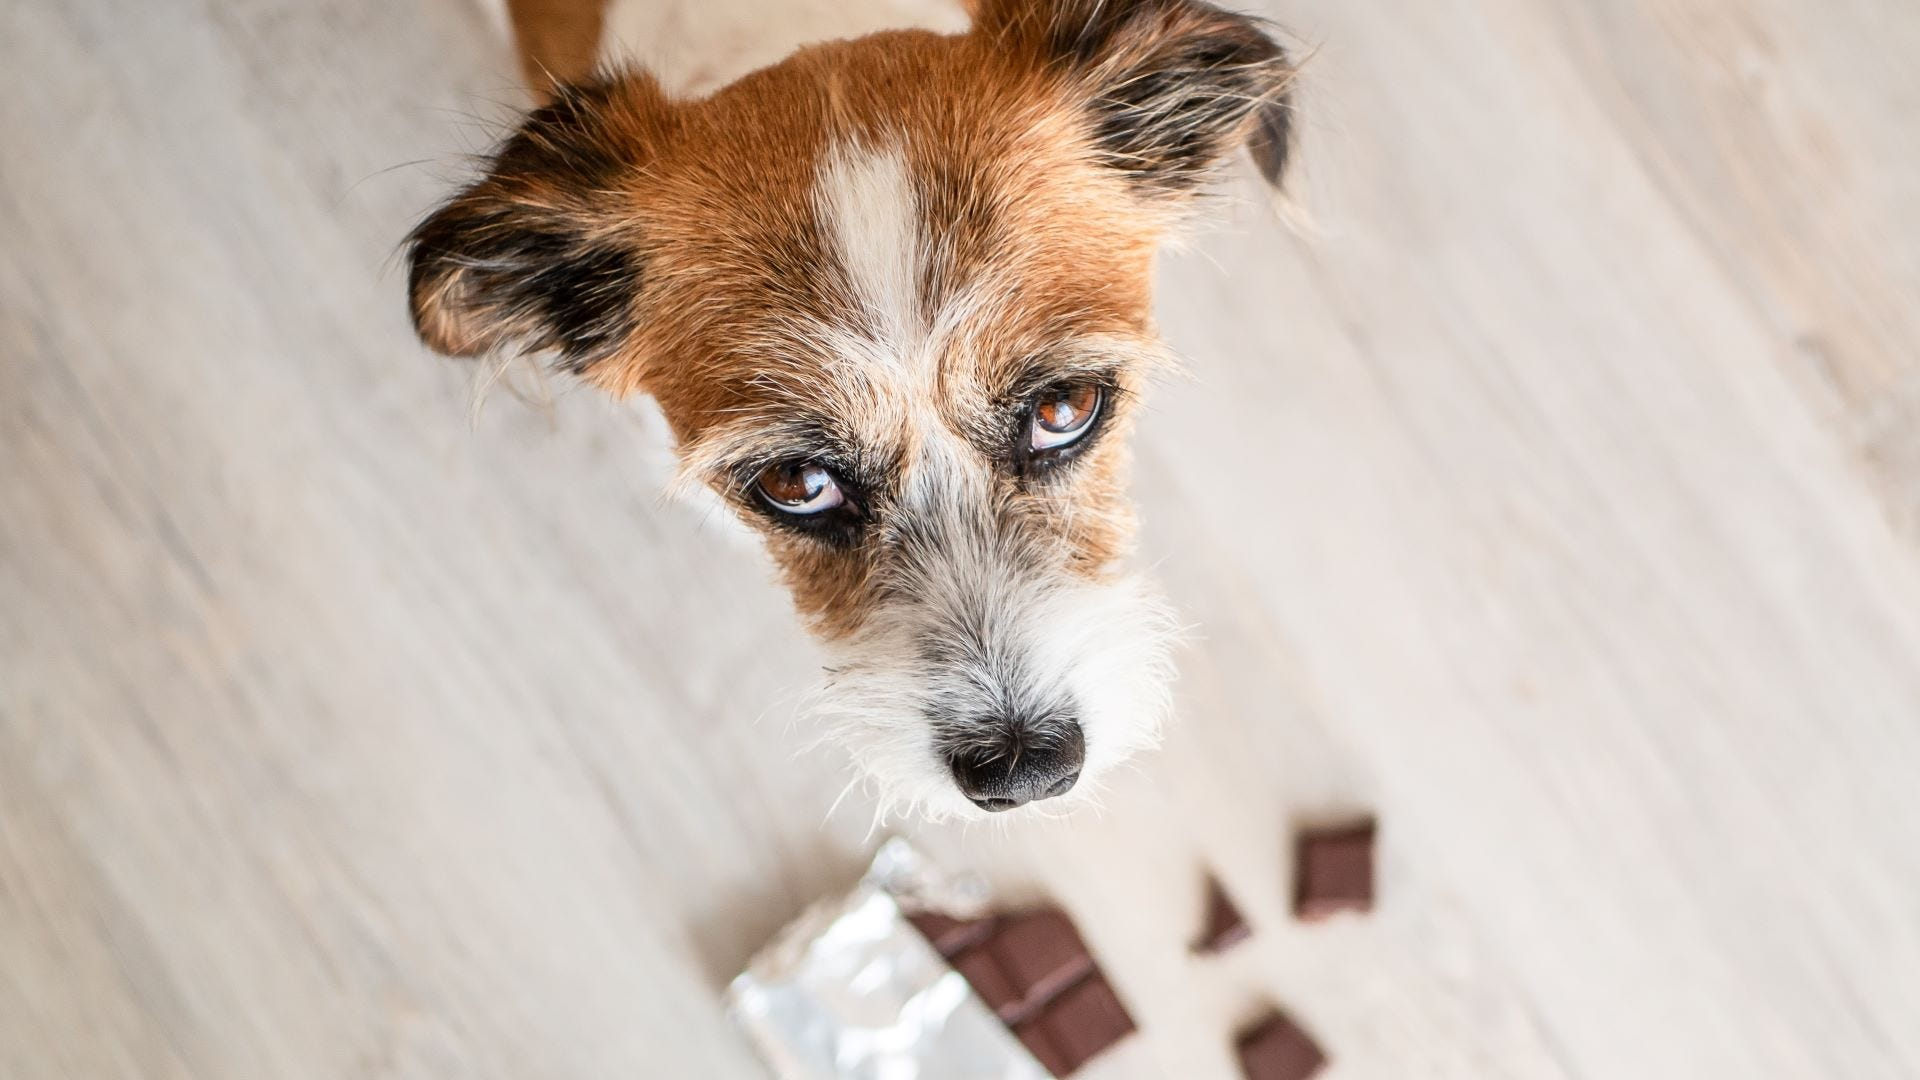 A little terrier dog looking guilty and an open chocolate bar on the ground.